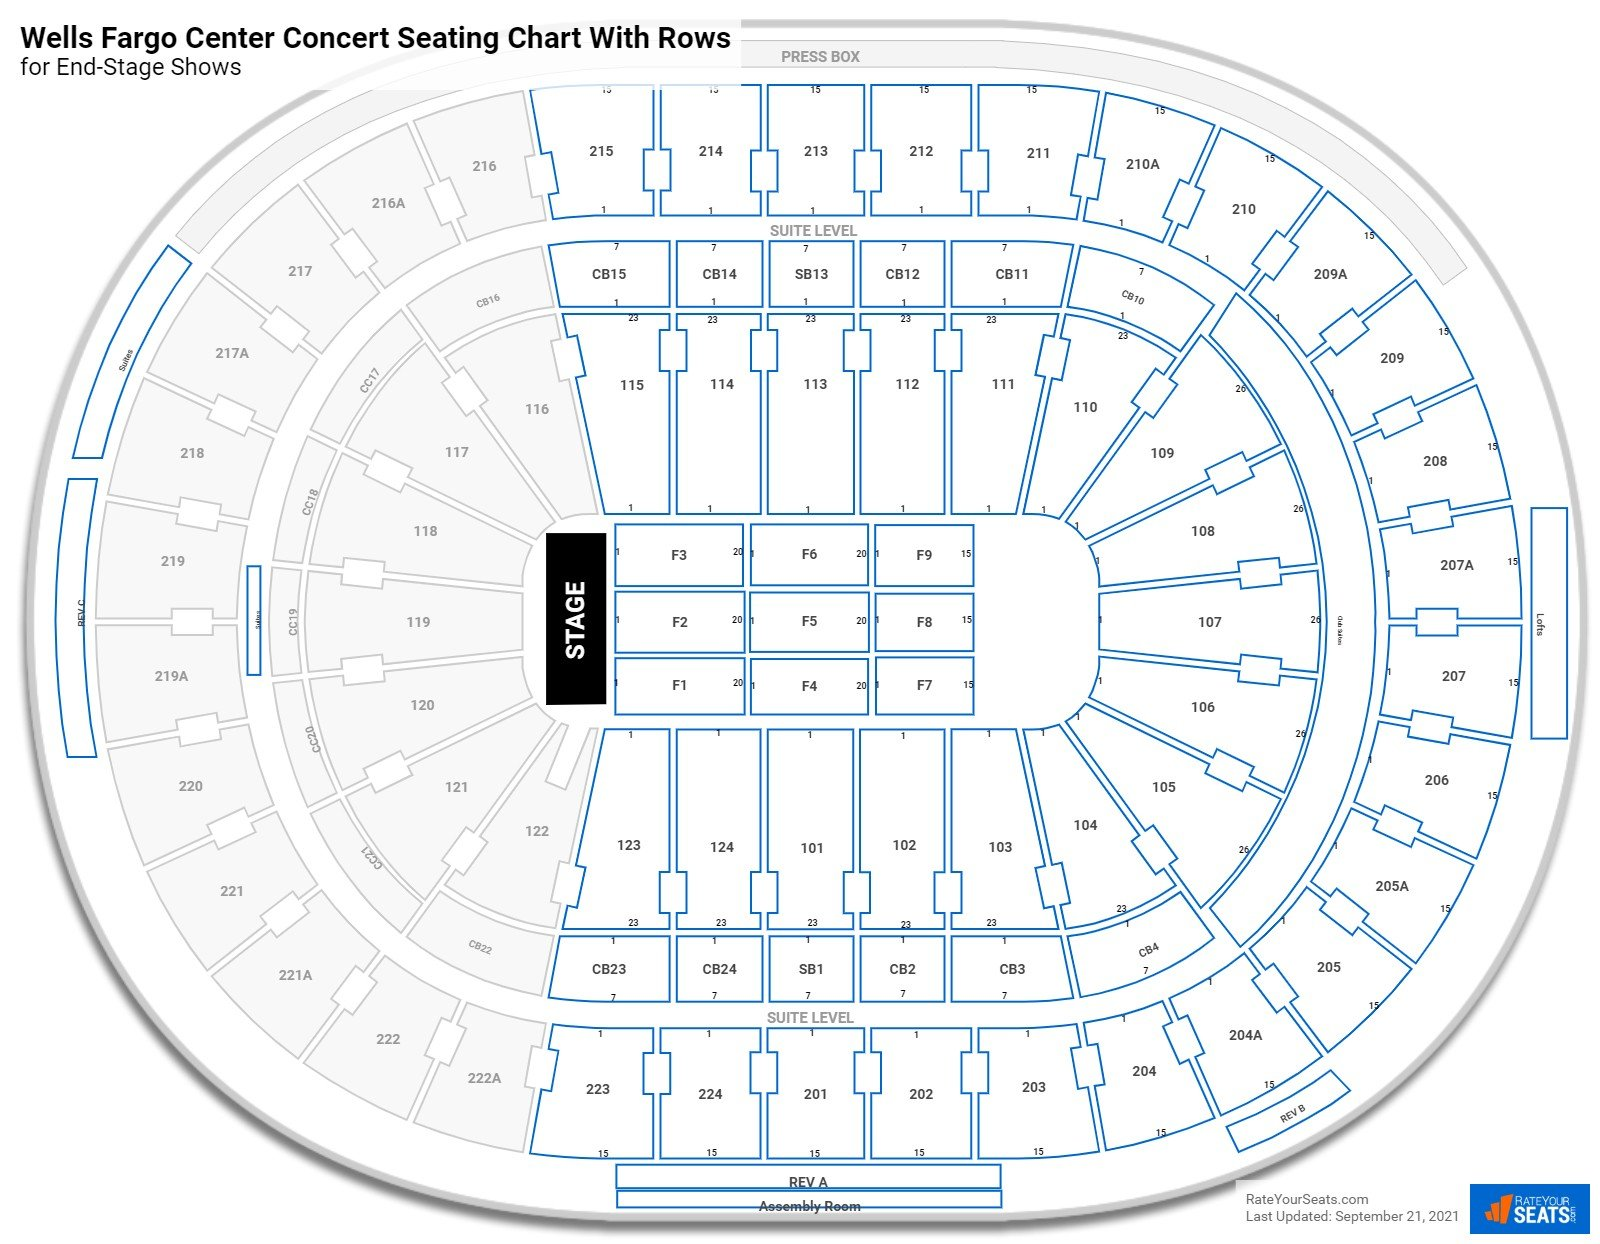 Wells Fargo Center seating chart with rows concert